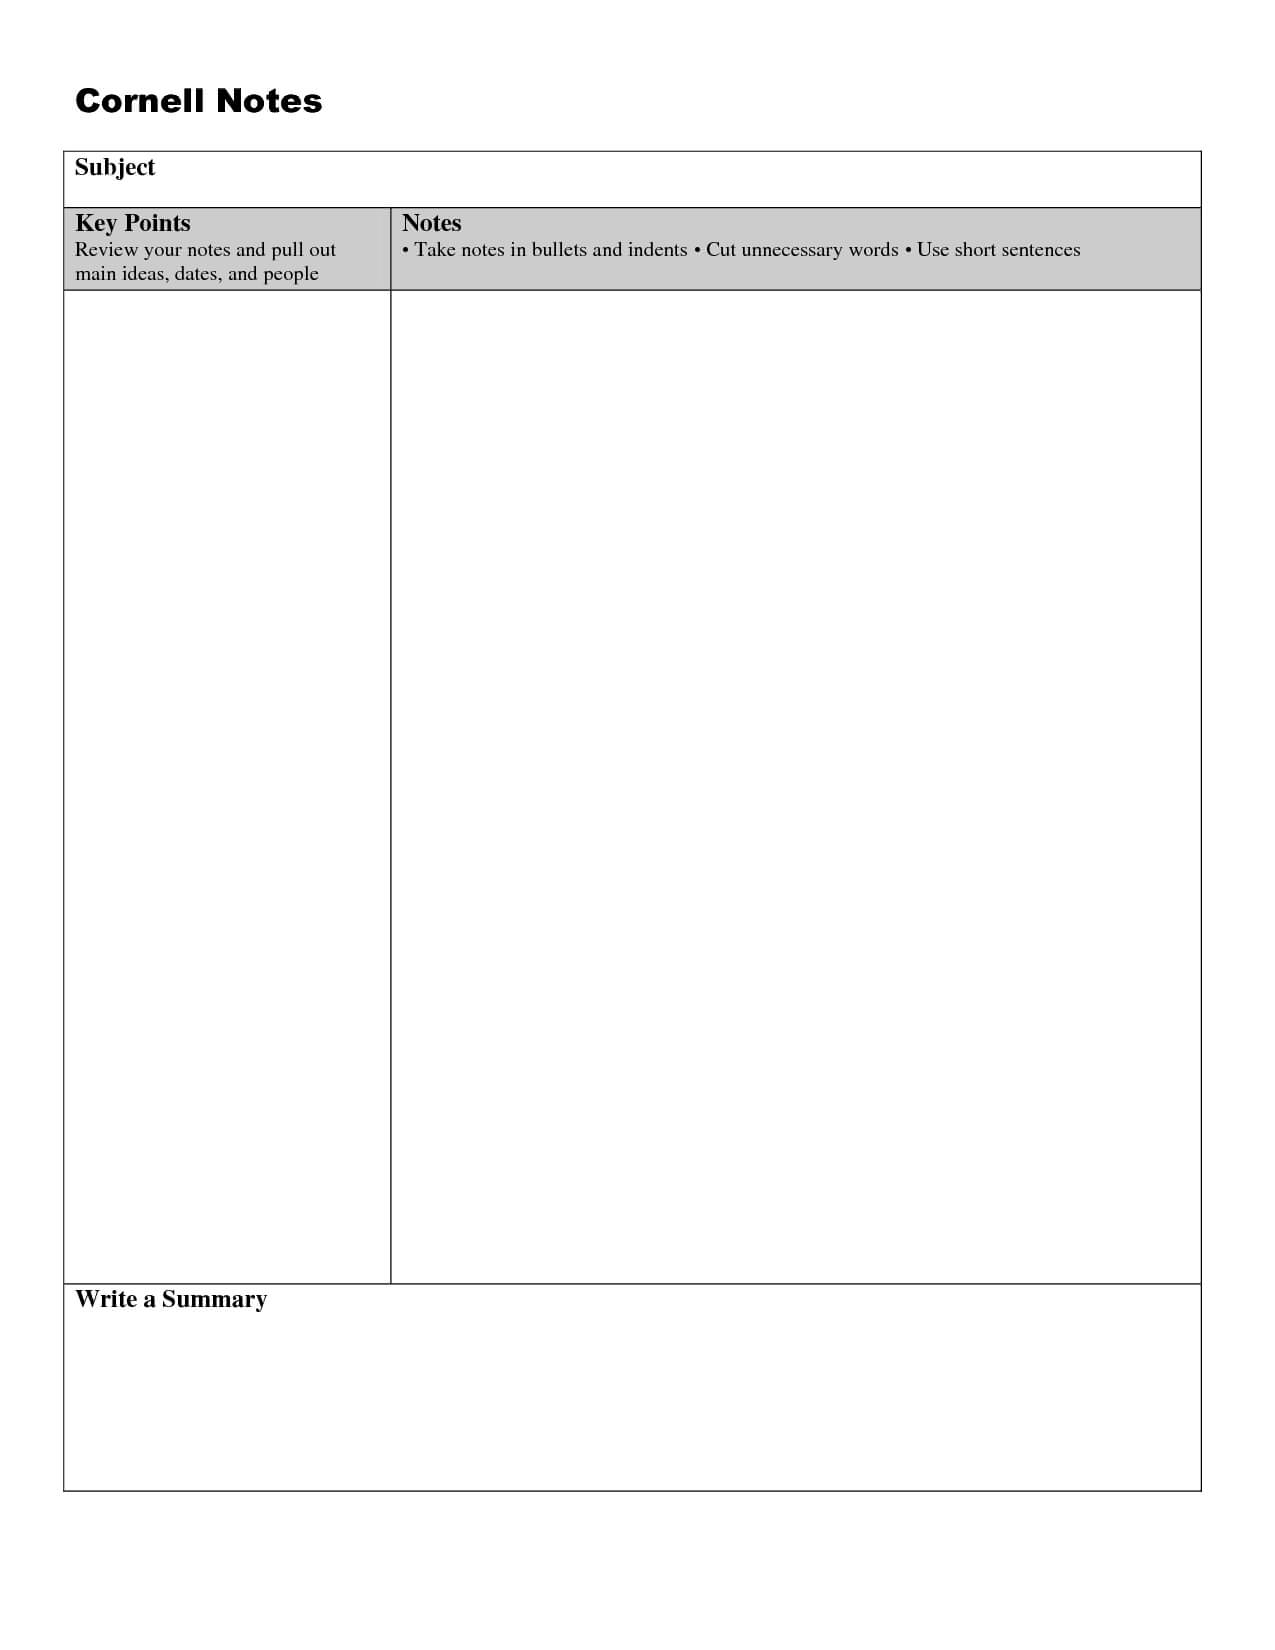 Cornell Note Taking Template Word | Cornell Notes, Cornell regarding Cornell Note Template Word